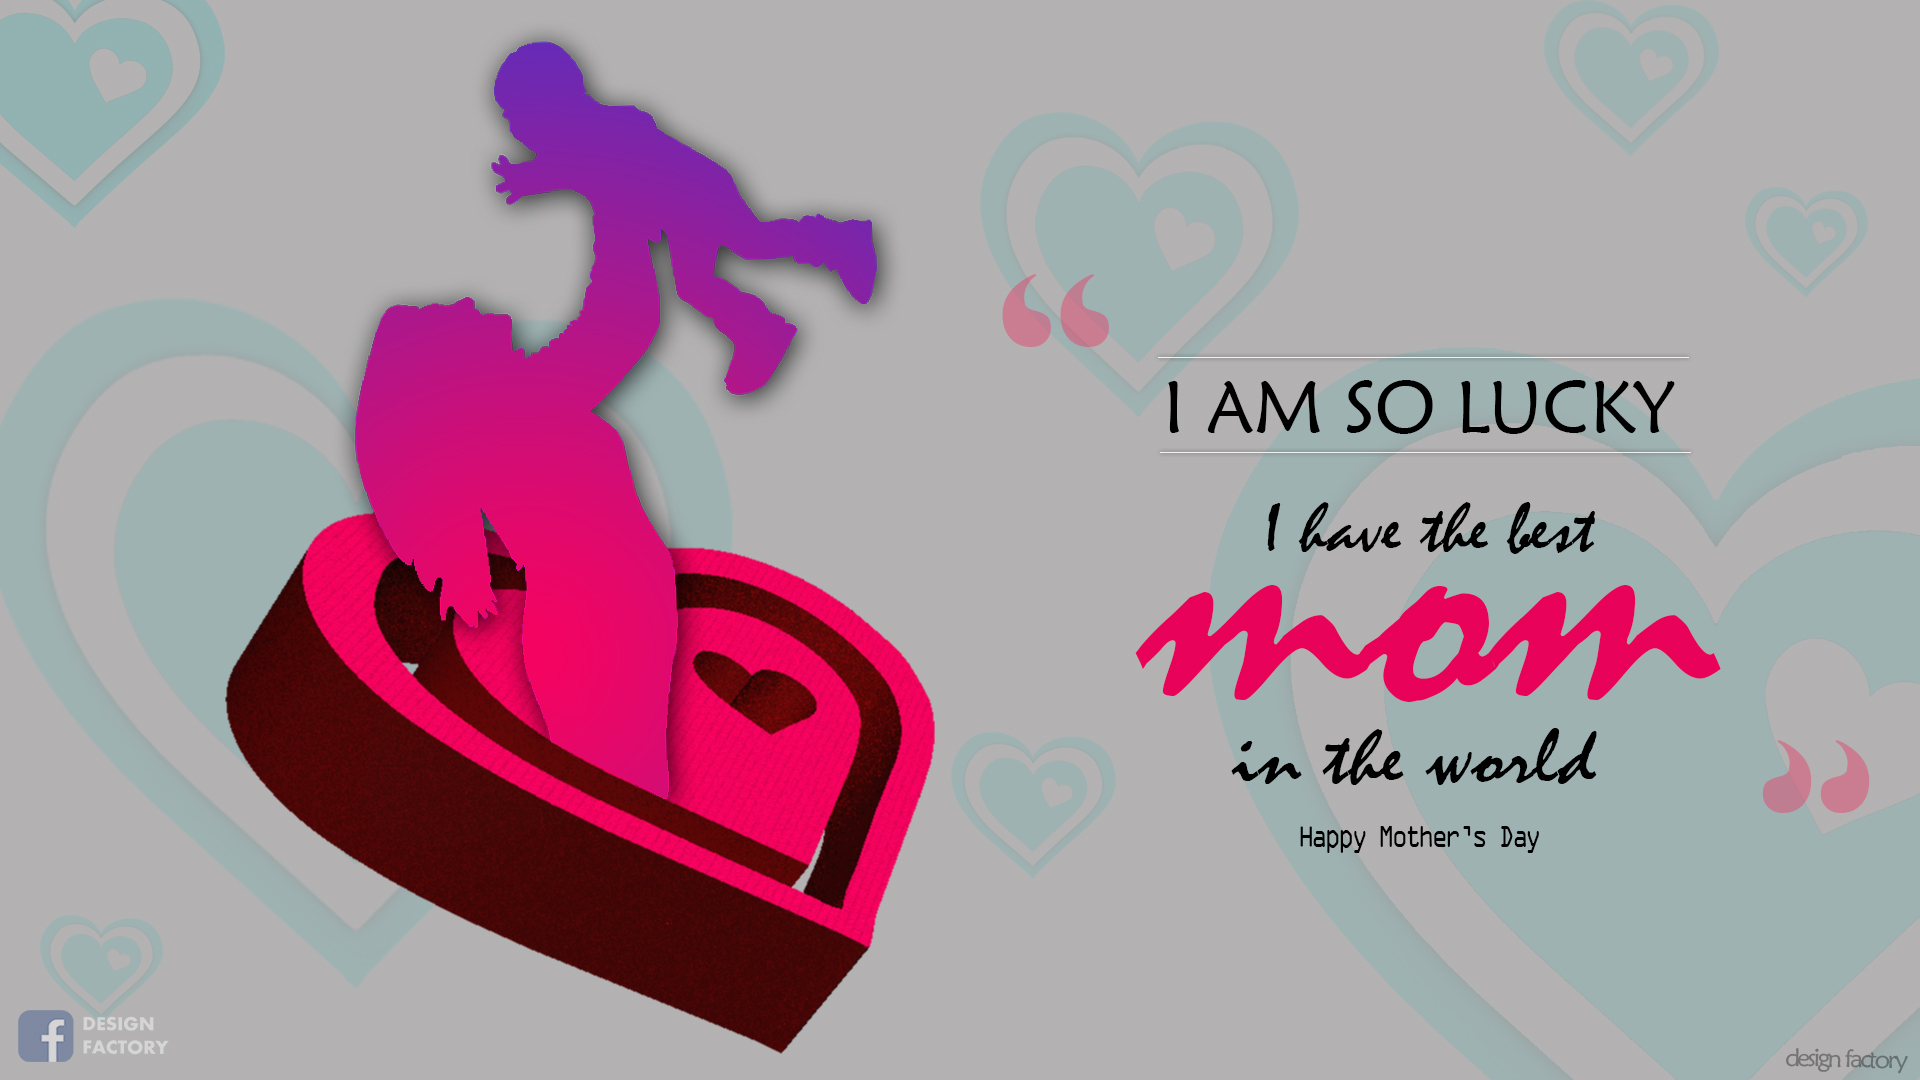 Wallpaper I Love You Mom : I Love You Wallpapers Free - WallpaperSafari